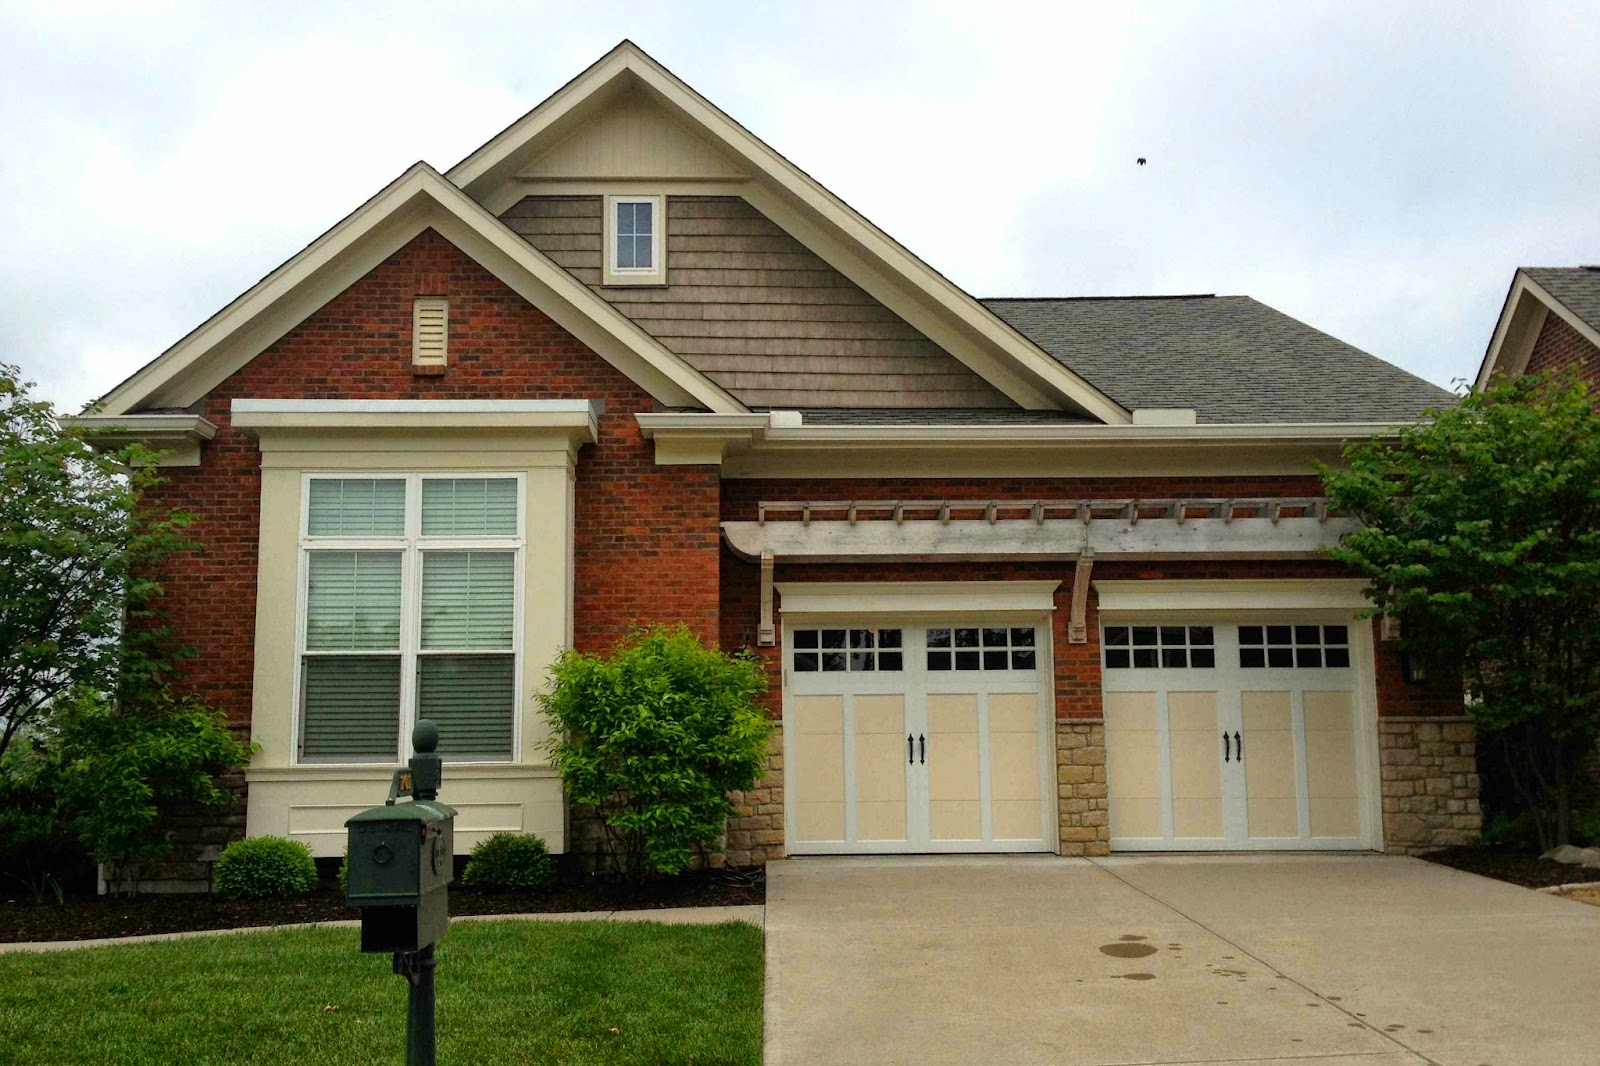 Garage Door Replacement 10 Tips for Making the Right Choice  Driven by Decor